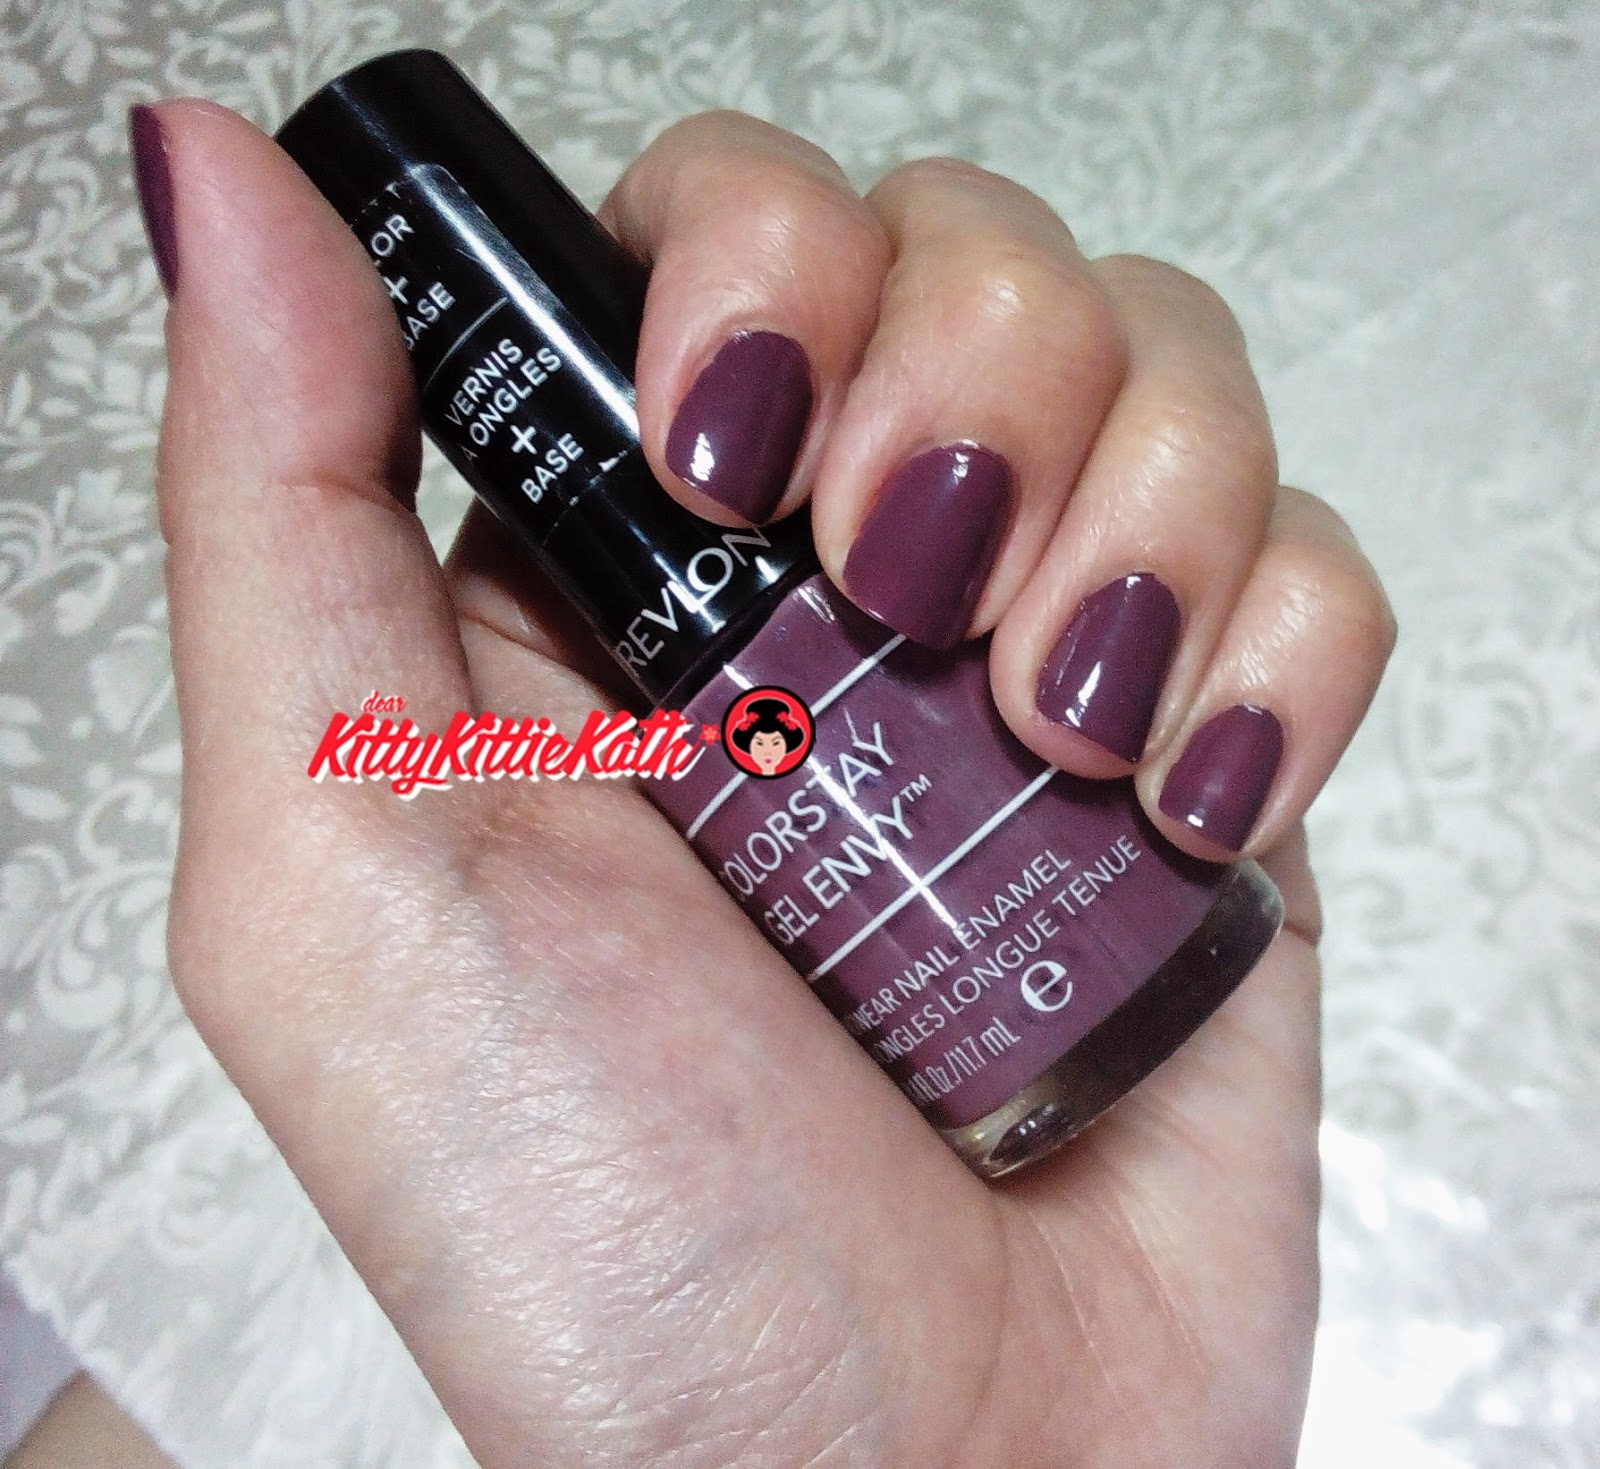 Product Review Revlon Colorstay Gel Envy Nail Enamel In Hold Em An Eggplant Shade